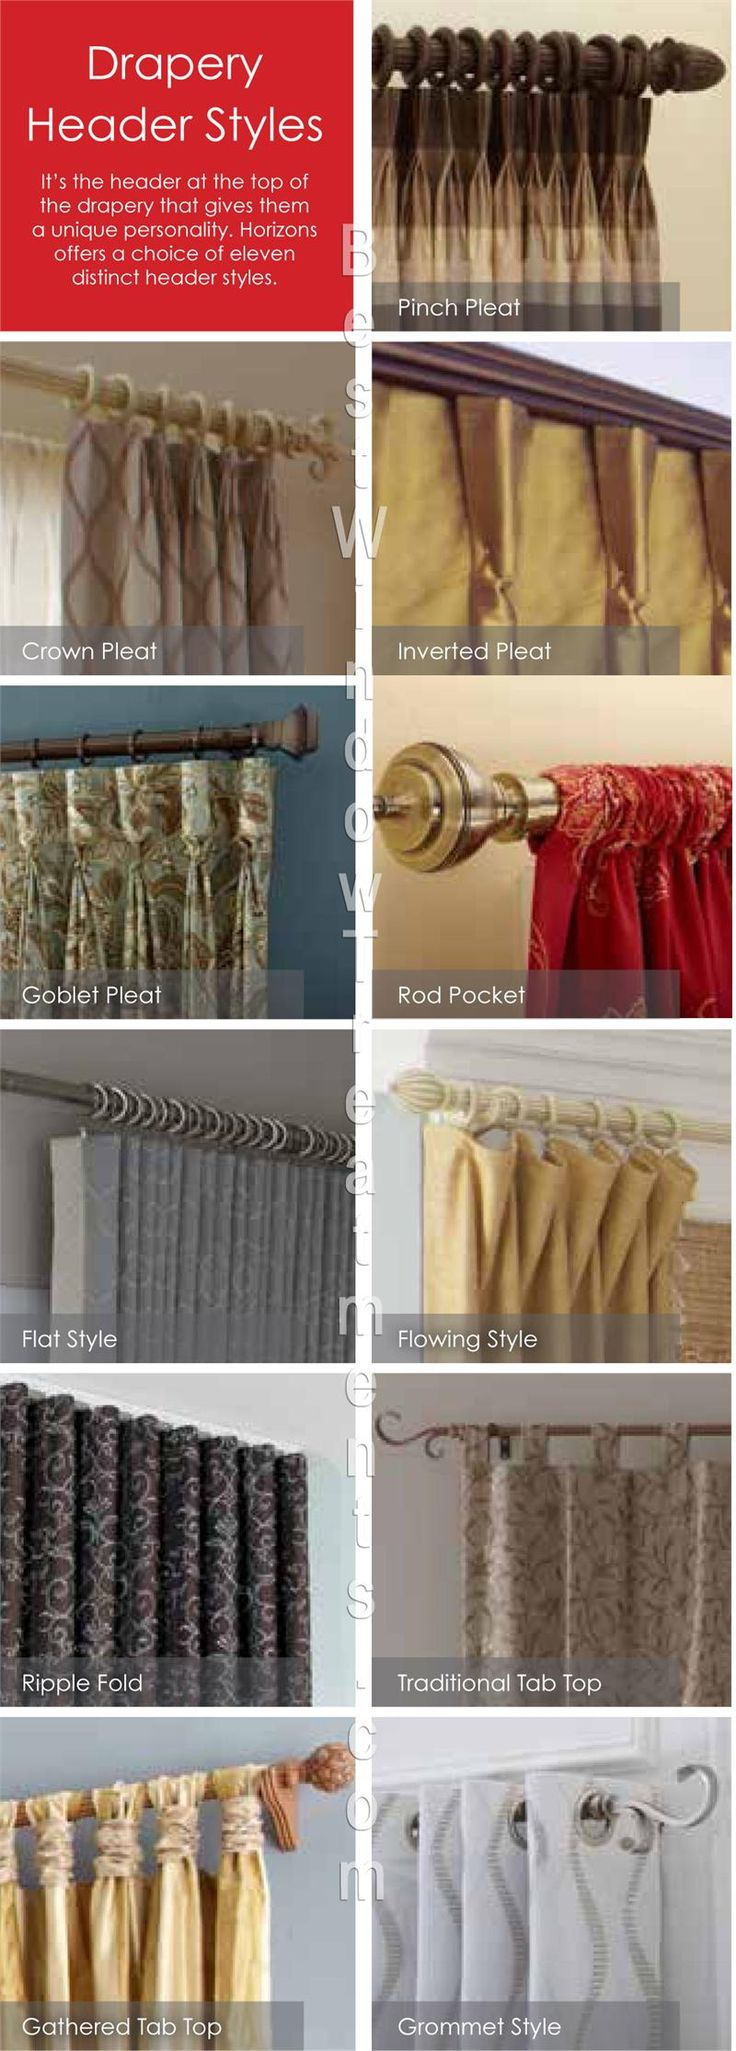 2017 06 types of curtains - Custom Drapery Panel Header Styles I Like The Contemporary Look Of The Flowing